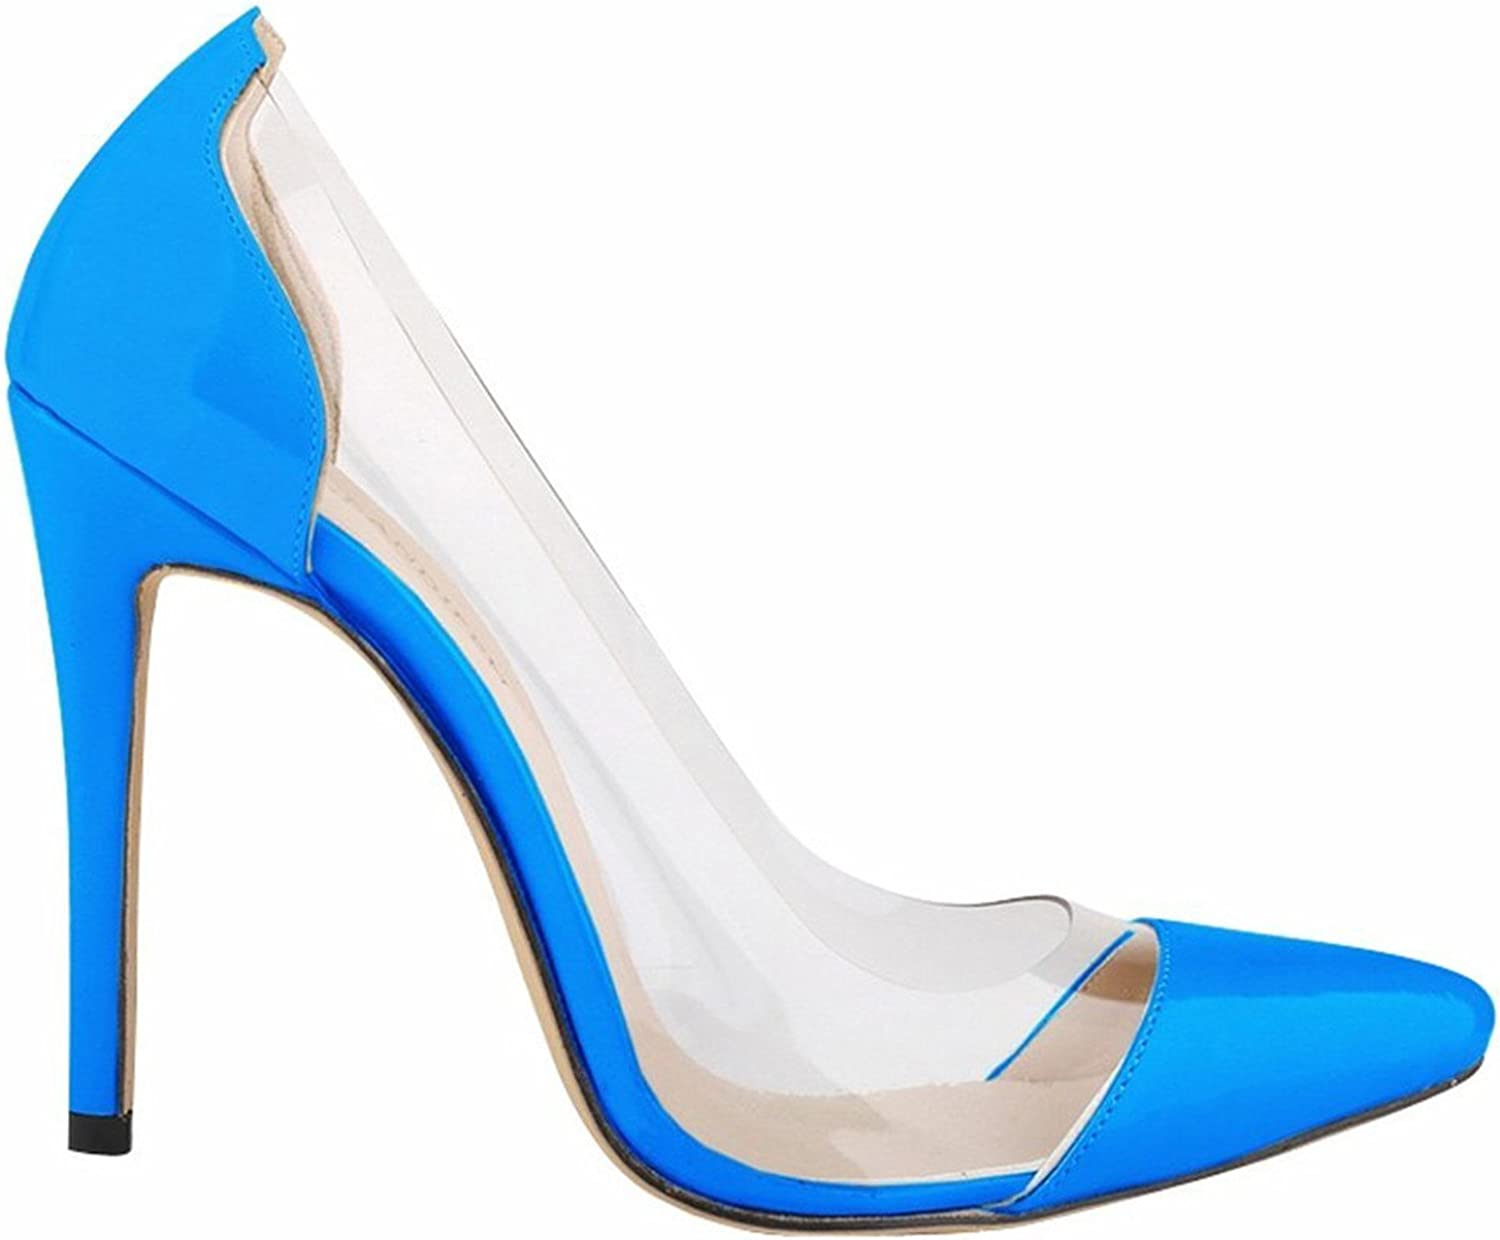 WANabcMAN Comfortable Women's Solid color Pointy High Heels Pump shoes